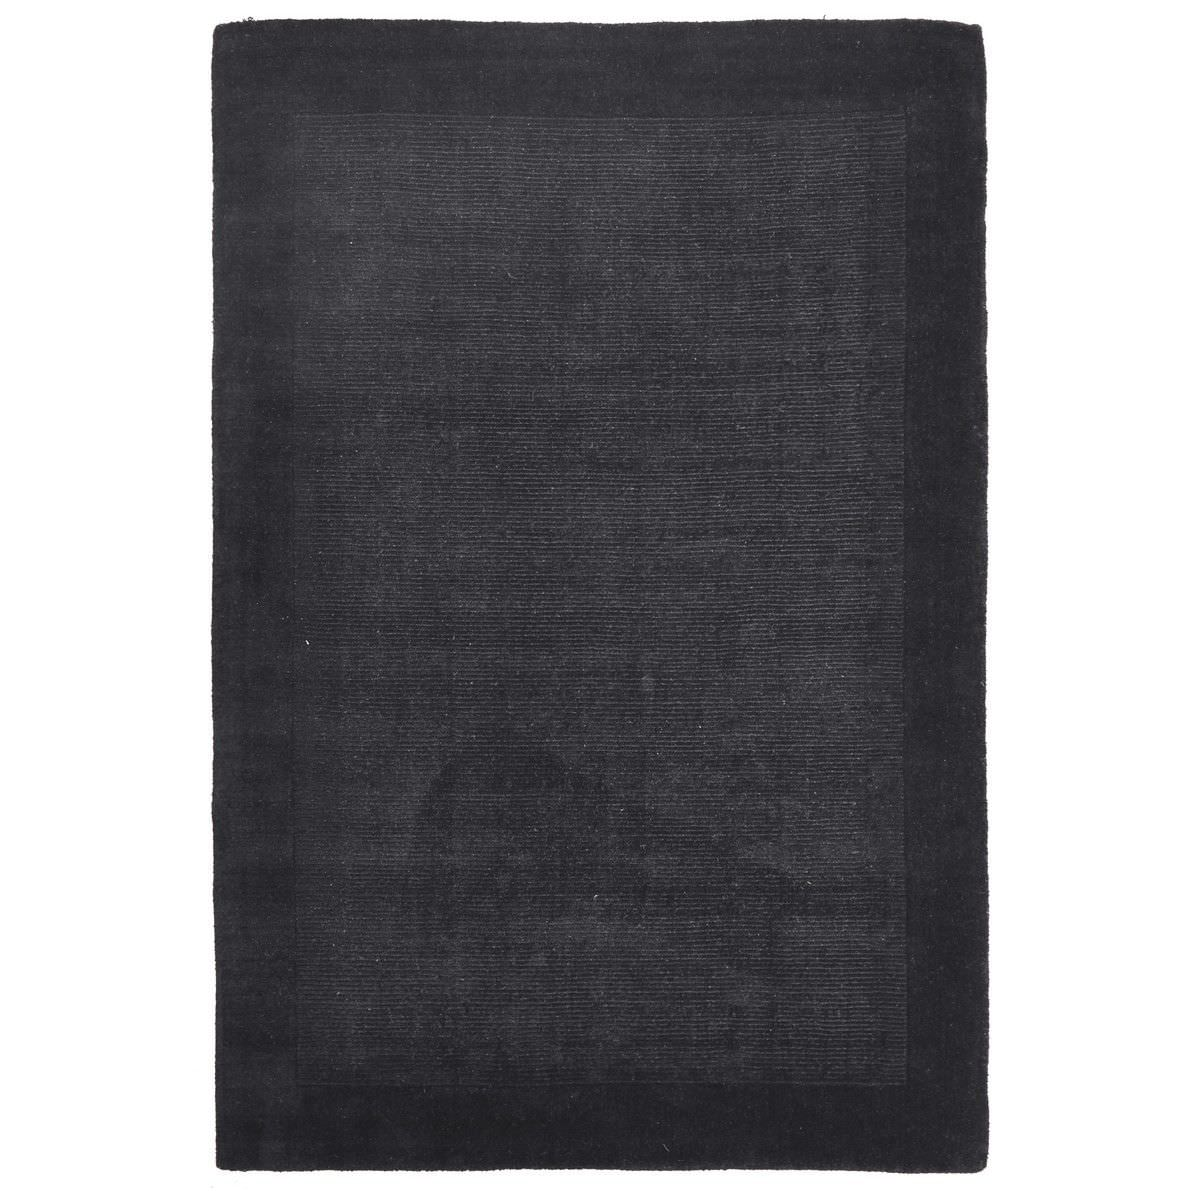 Luxe Hand Tufted Wool Runner Rug, 225x155cm, Charcoal